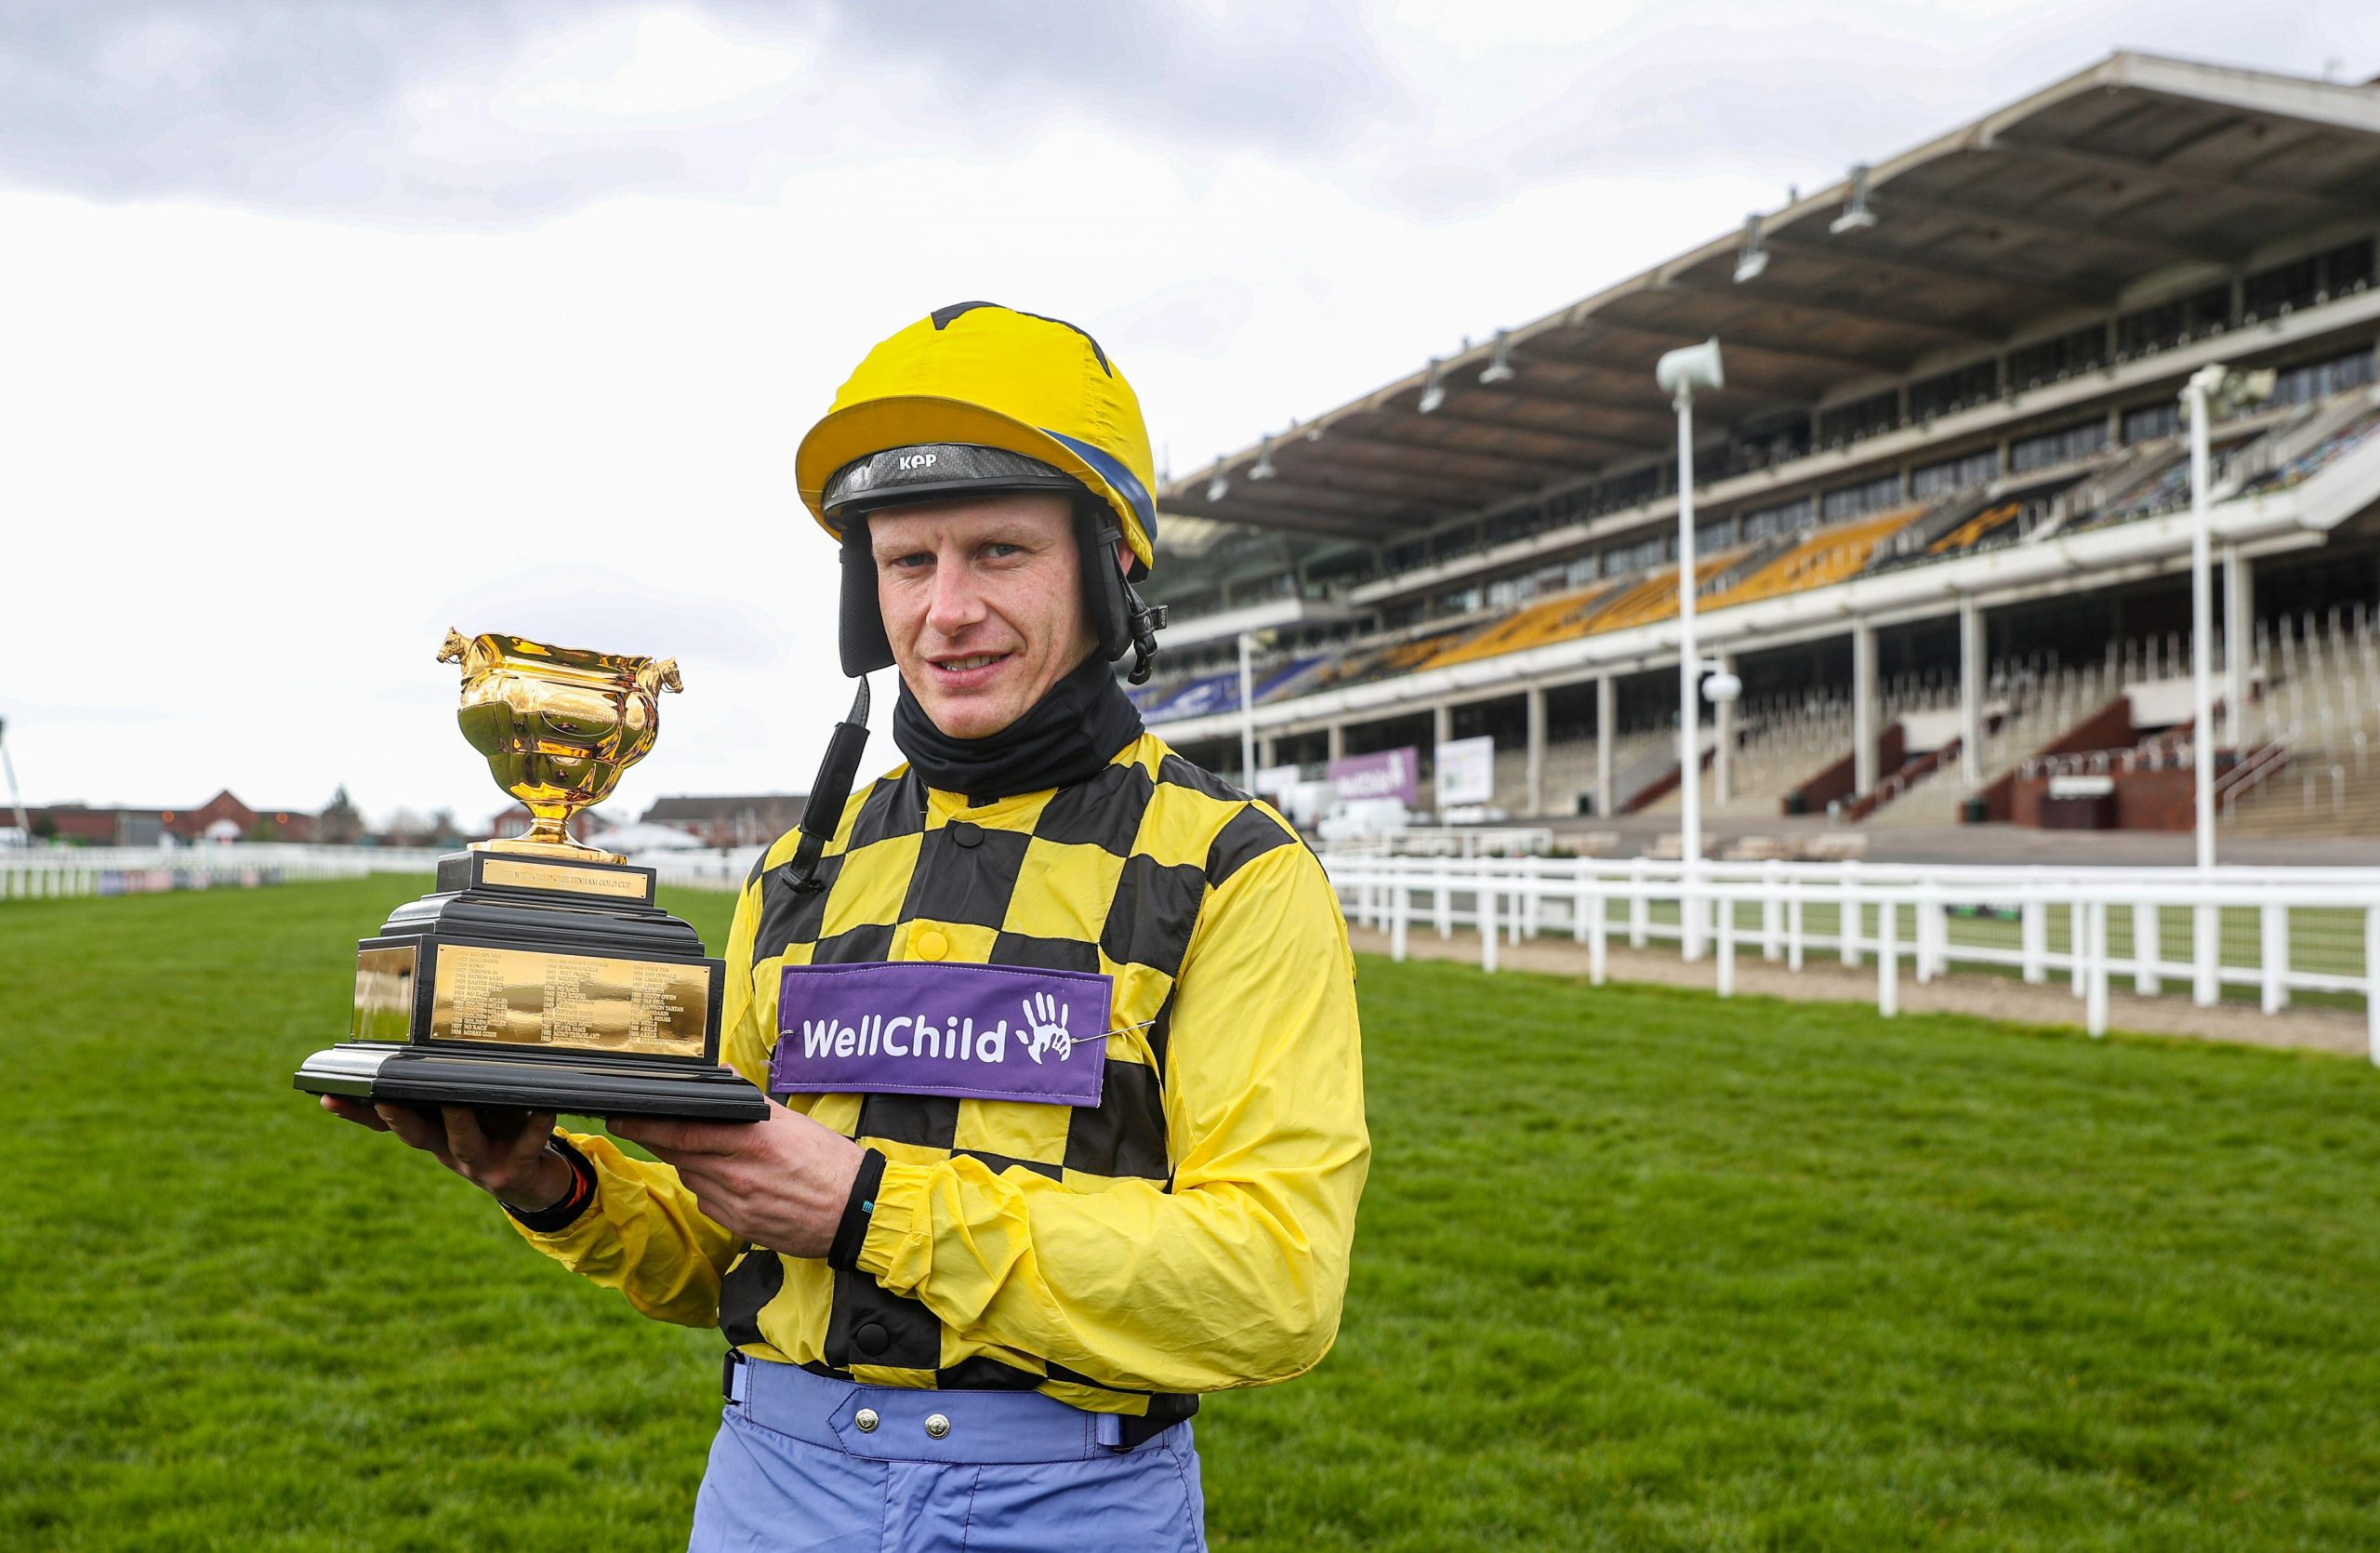 Paul Townend with The Gold Cup at Cheltenham Racecourse ahead of the Cheltenham Festival. Issue date: Tuesday March 16, 2021.